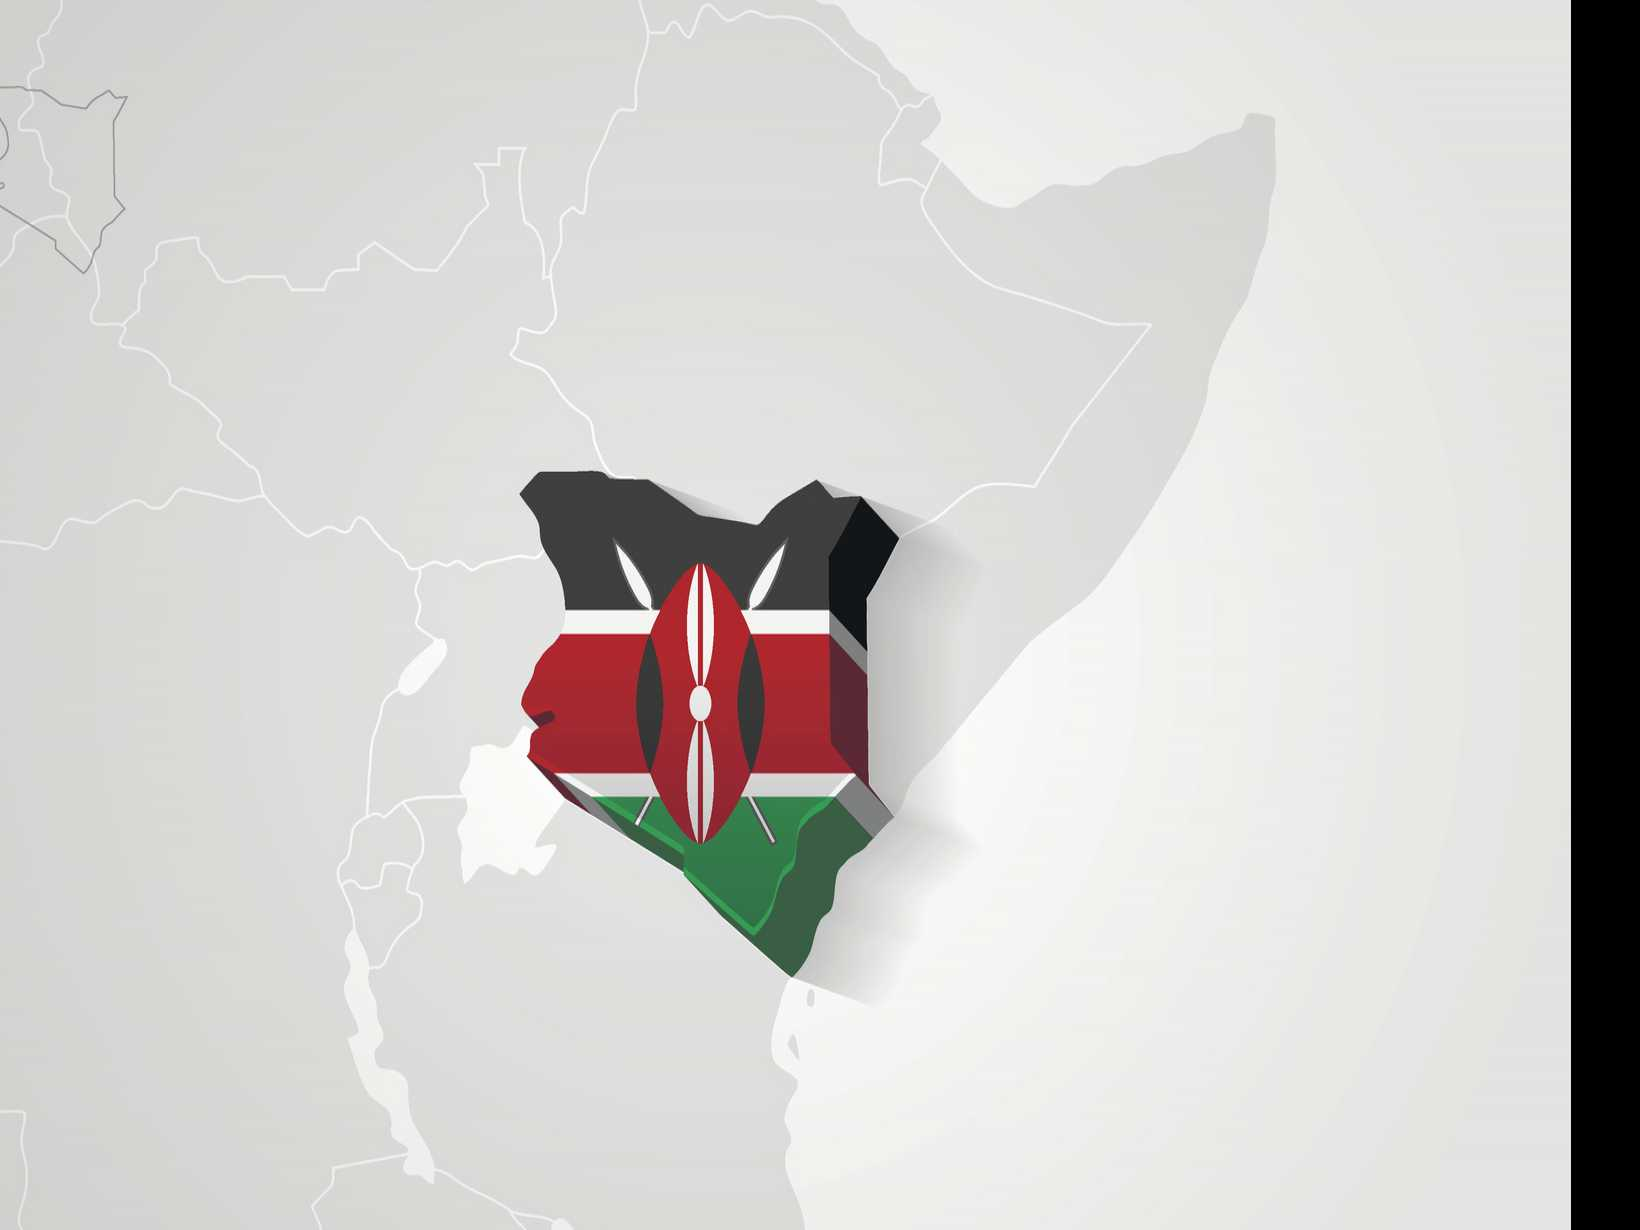 Kenya Cleared for Direct Flights to the U.S. After a Decade